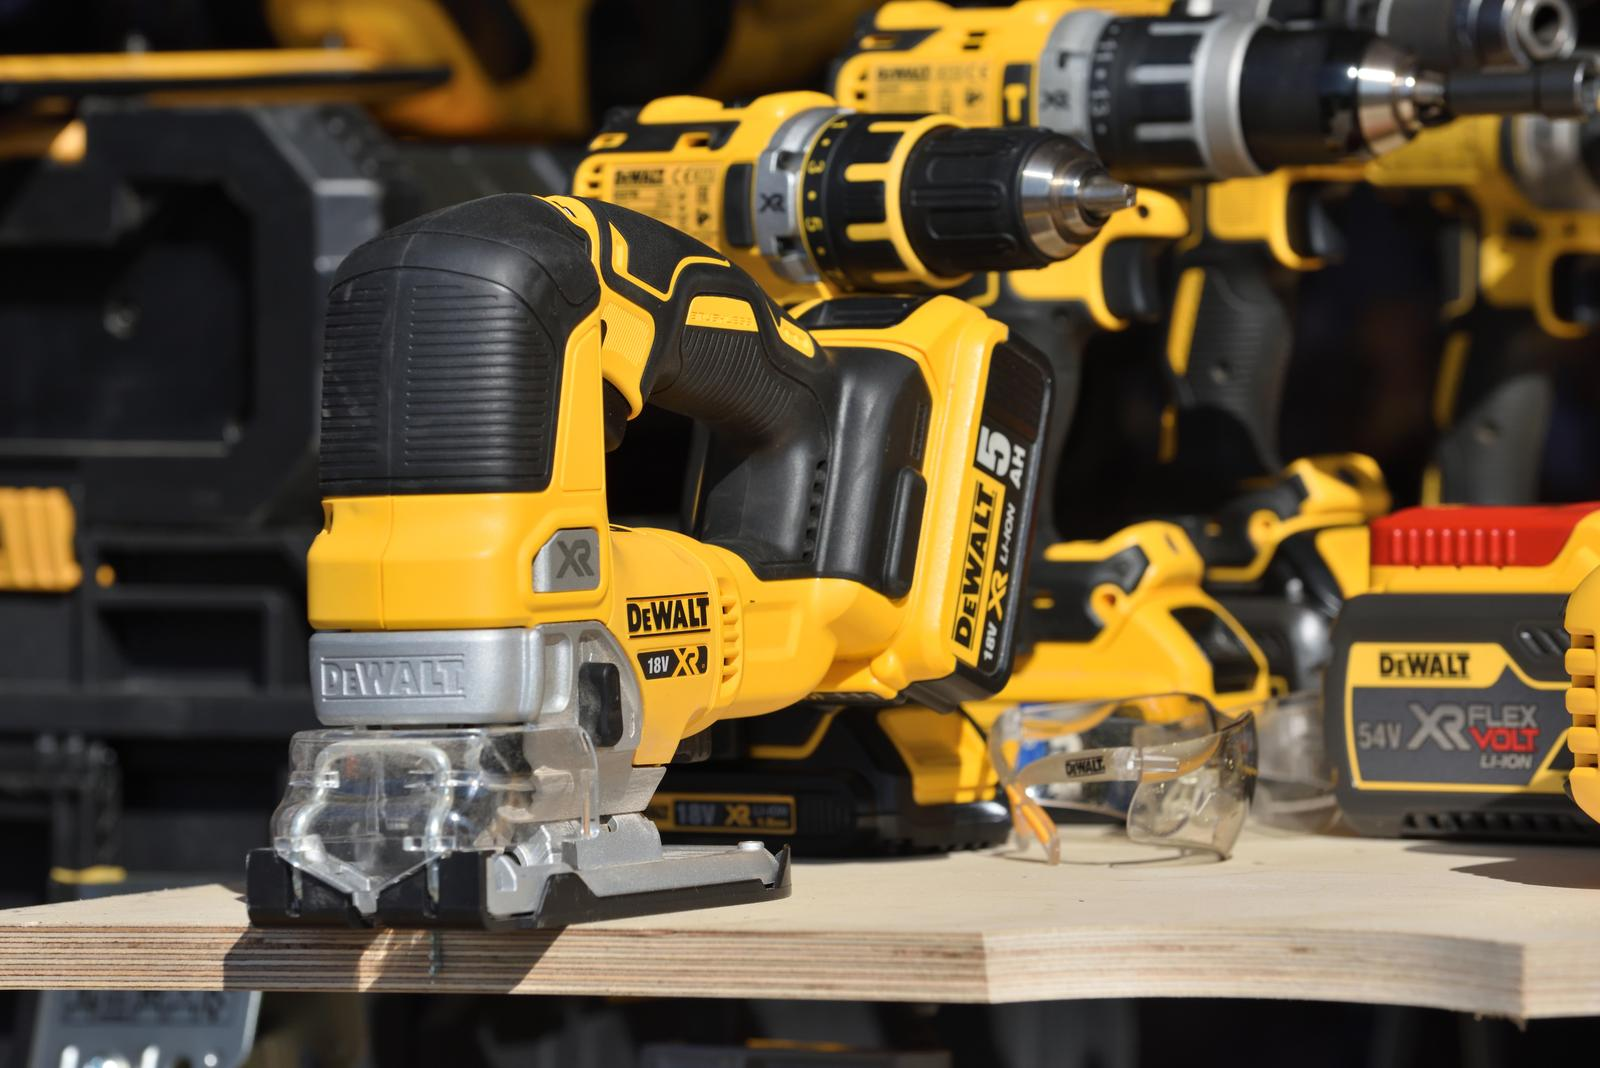 Kaunas, Lithuania - April 04: DeWalt power tools in Kaunas on April 04, 2019. DeWalt is an American worldwide brand of power tools and hand tools for the construction